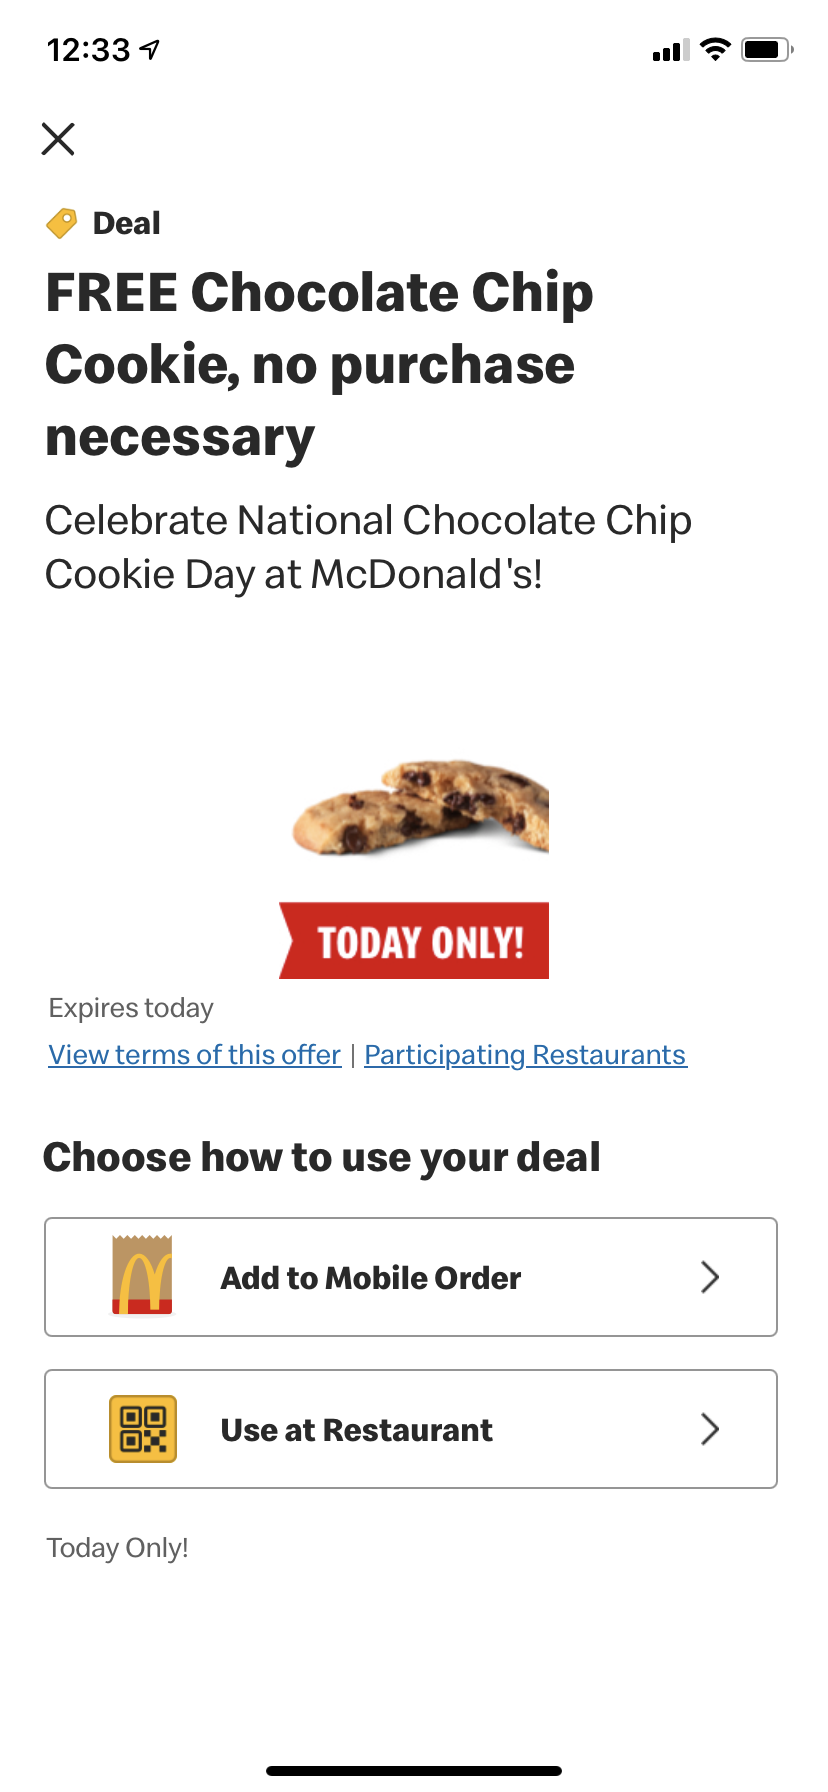 App Offer for a FREE Chocolate Chip Cookie at McDonald's TODAY